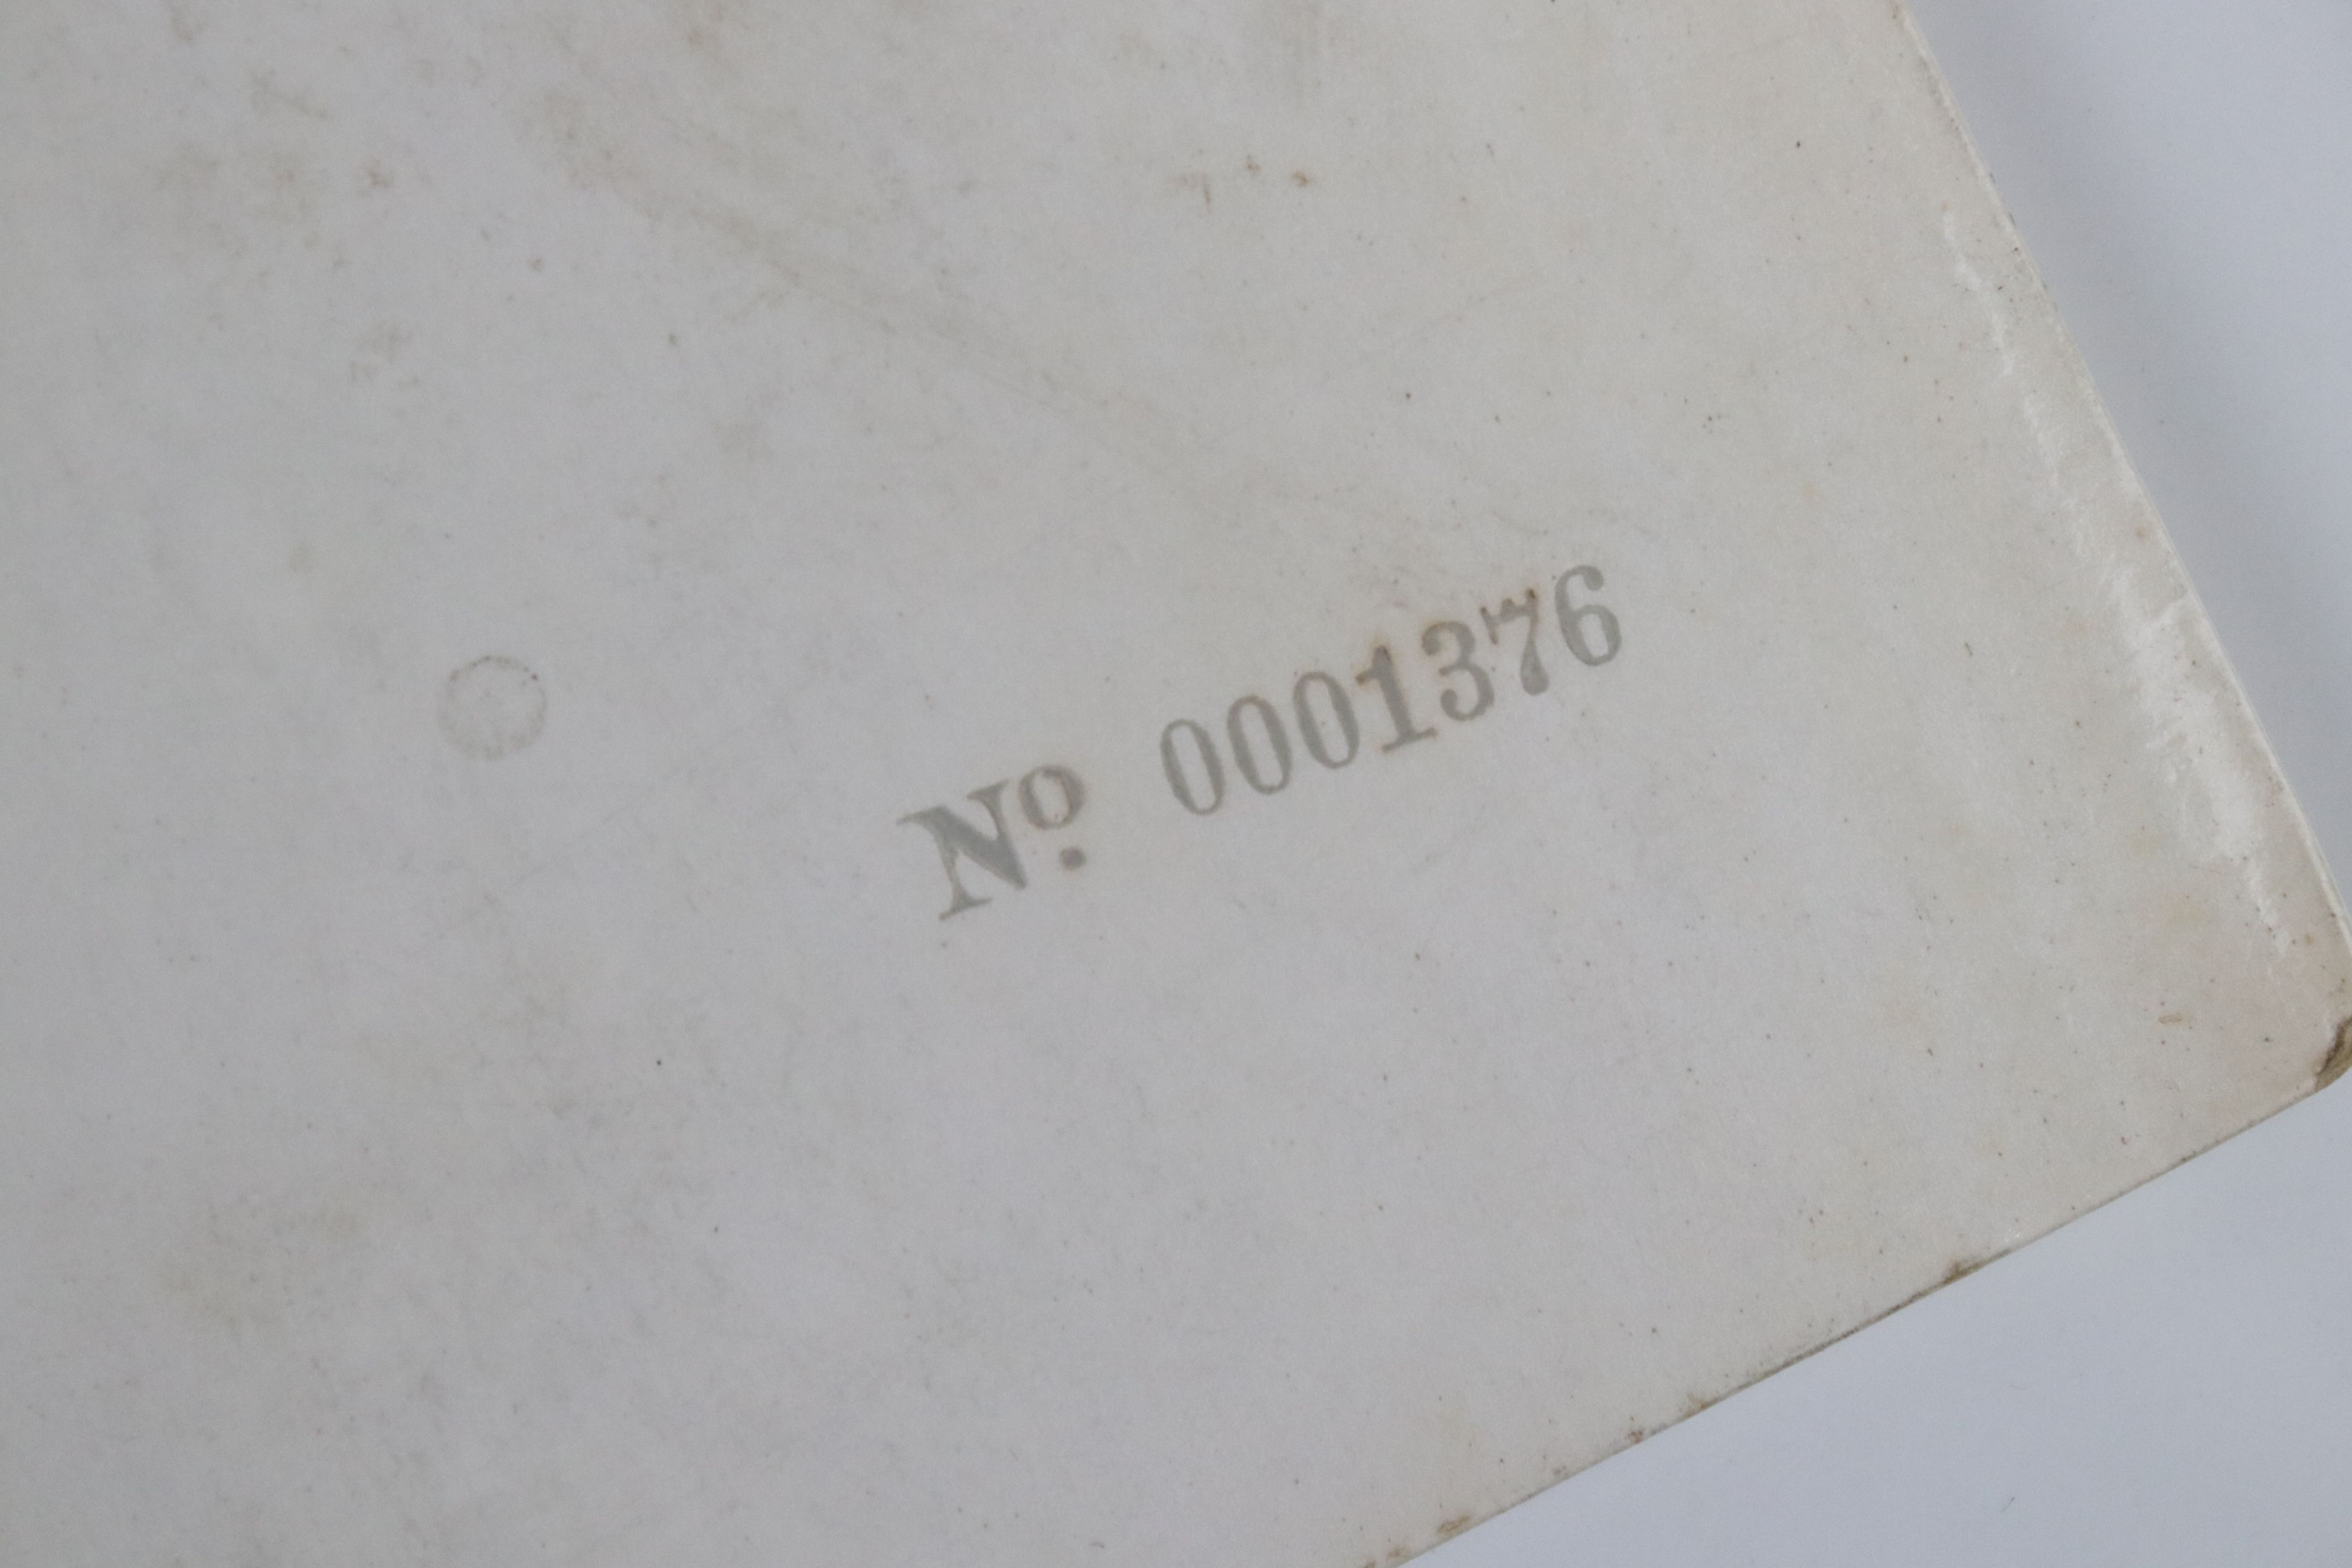 Vinyl - The Beatles White Album LP mono PMC7067-8, numbered 0001376 with 8 x coloured prints and - Image 10 of 10